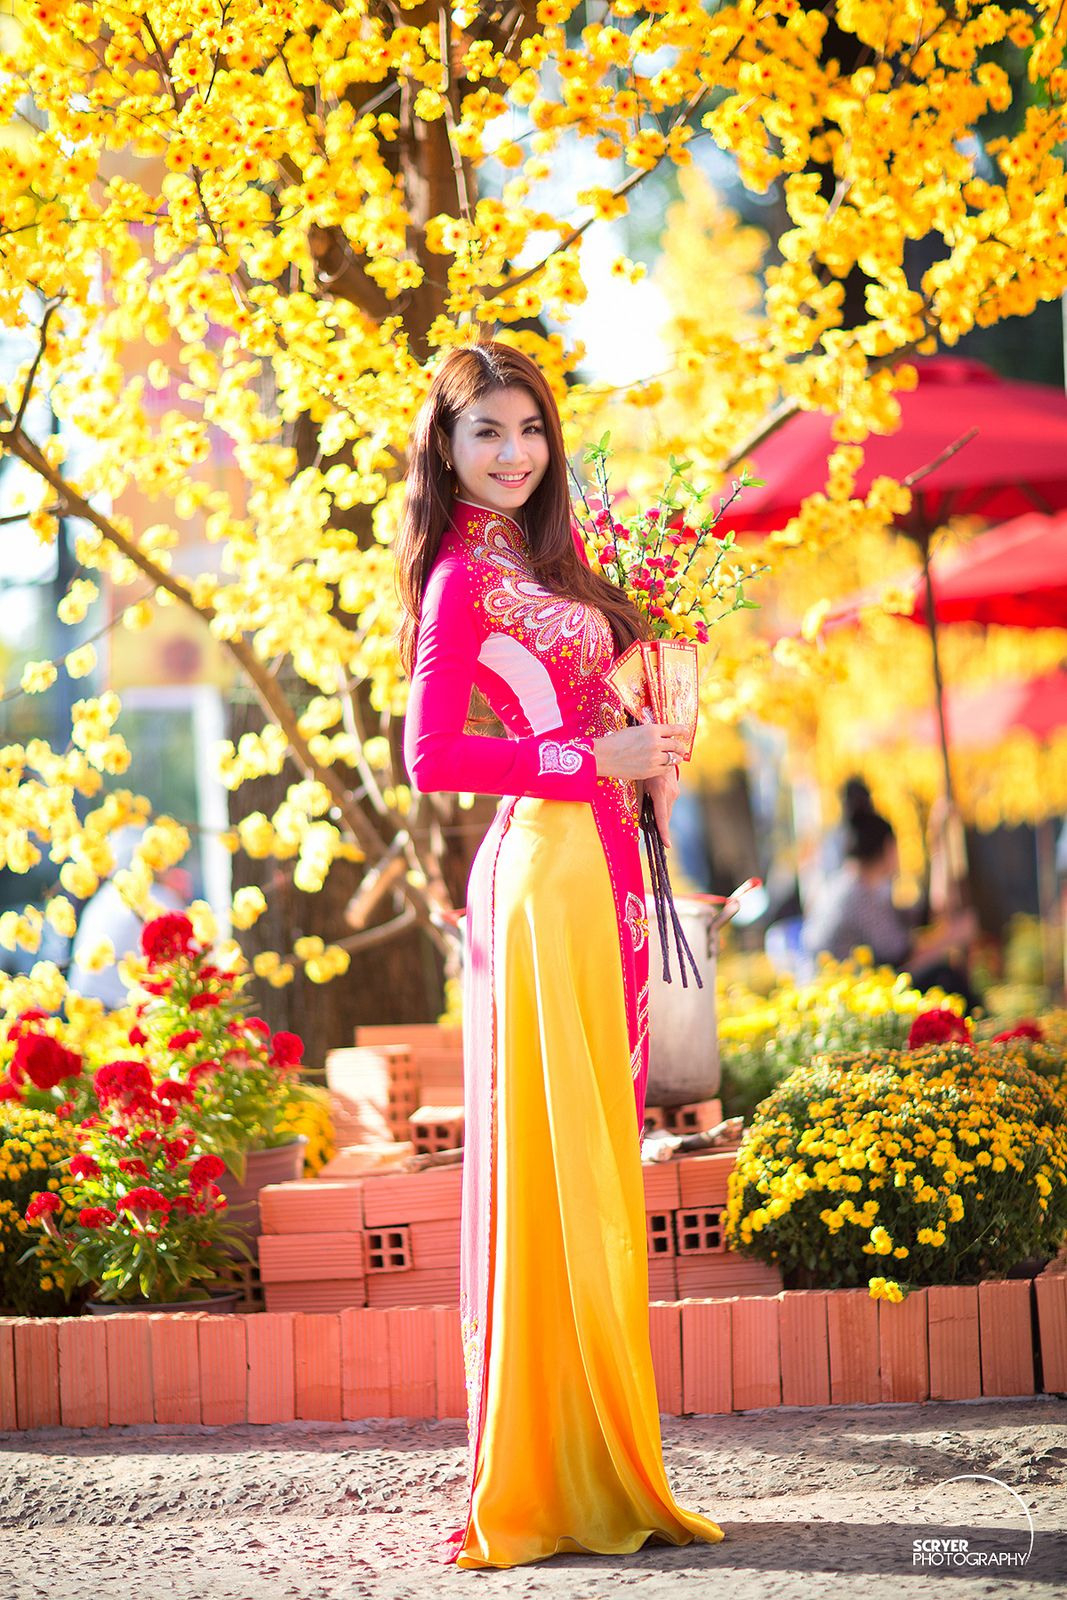 Ao Dai | Traditionelle Kleidung